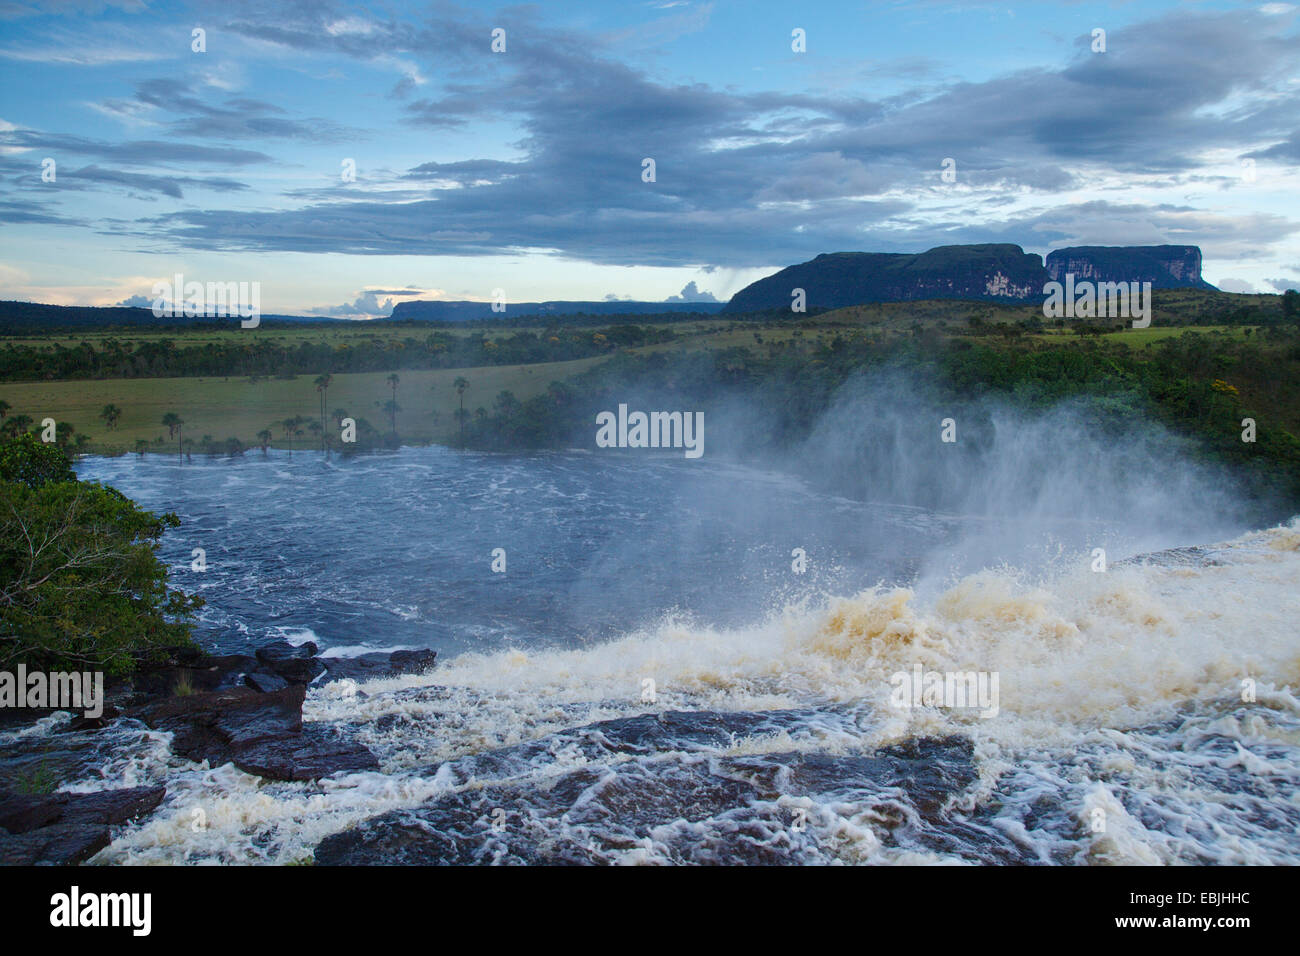 at the Salto Sapo near Canaima, Venezuela, Canaima National Park - Stock Image